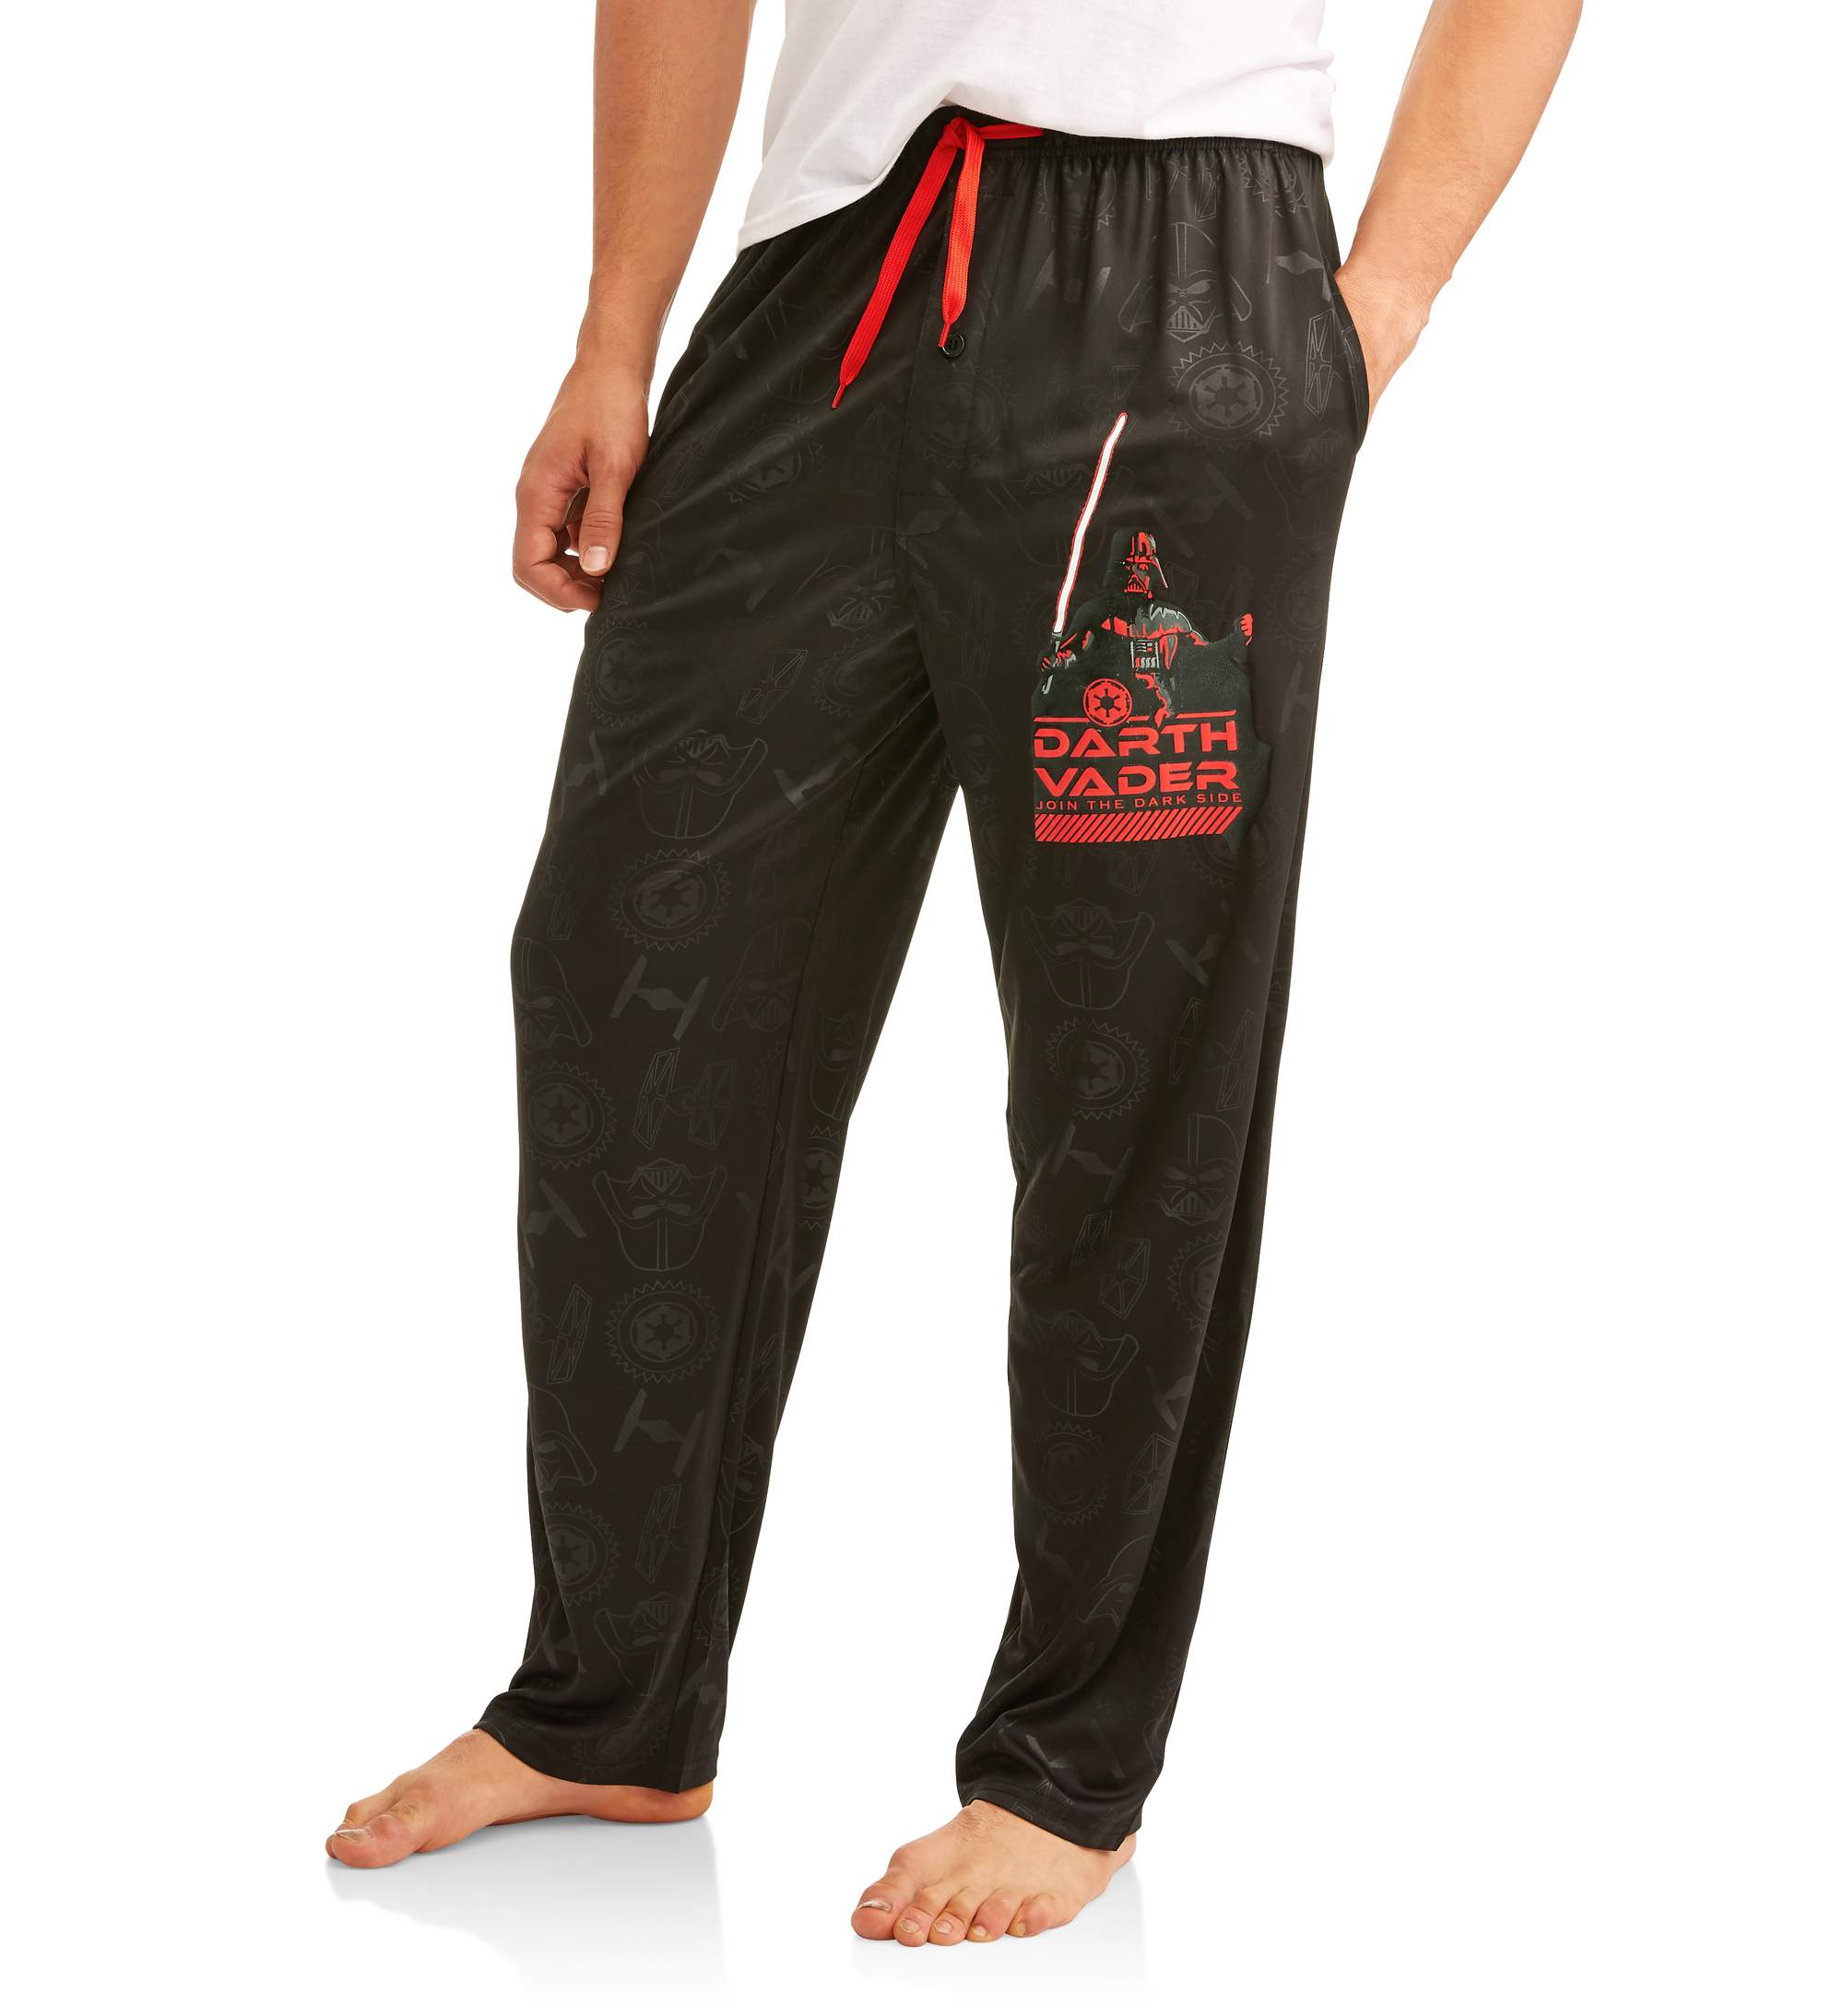 Star Wars Join the Dark Side Pant